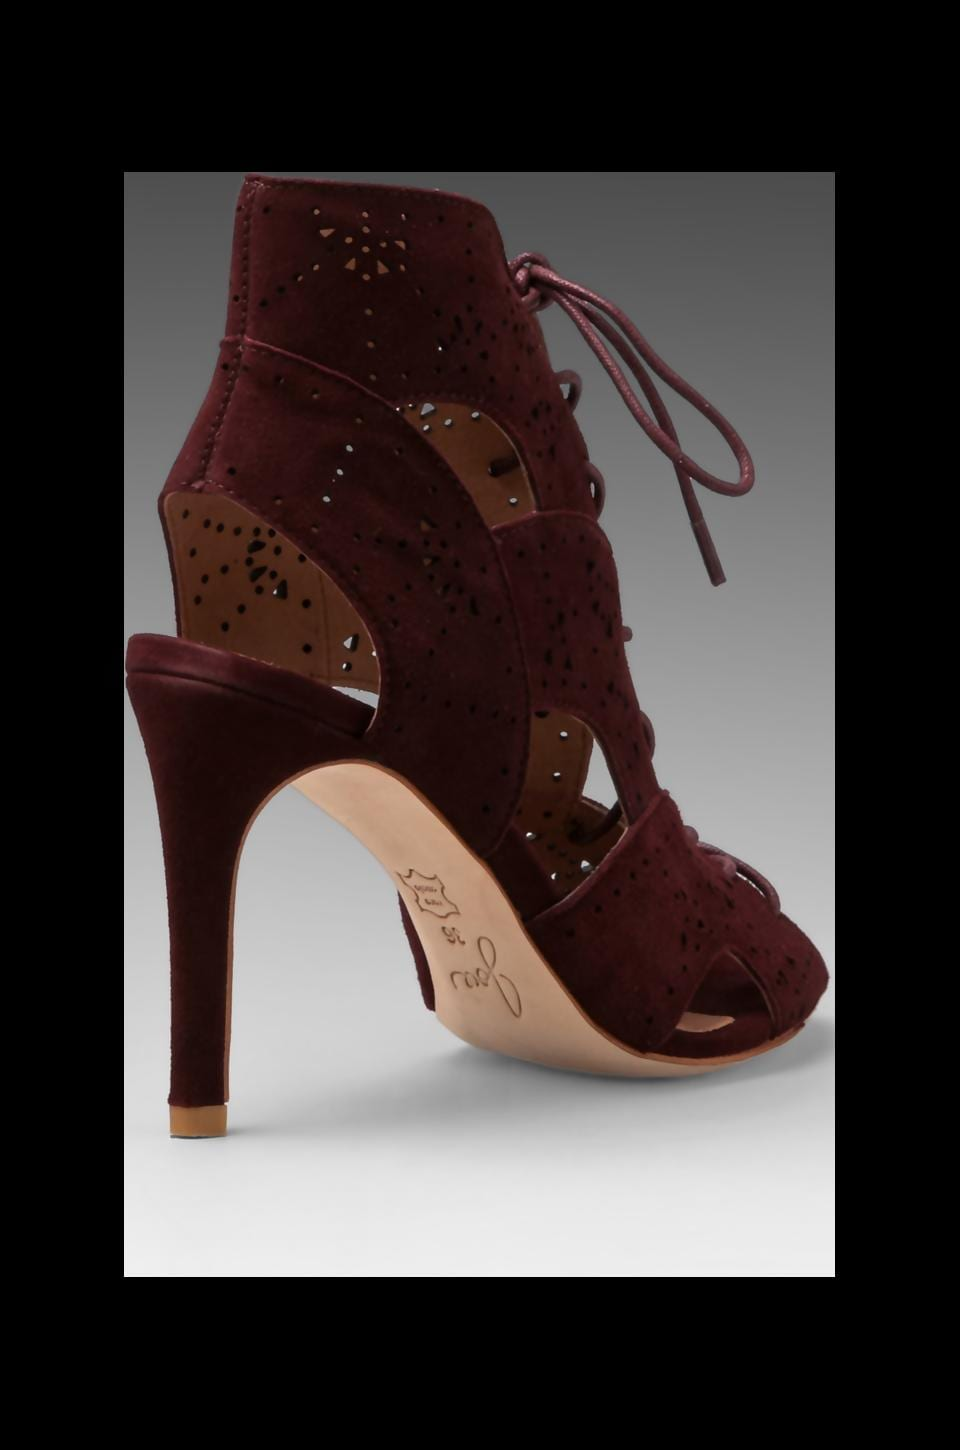 Joie Raquel Pump in Oxblood